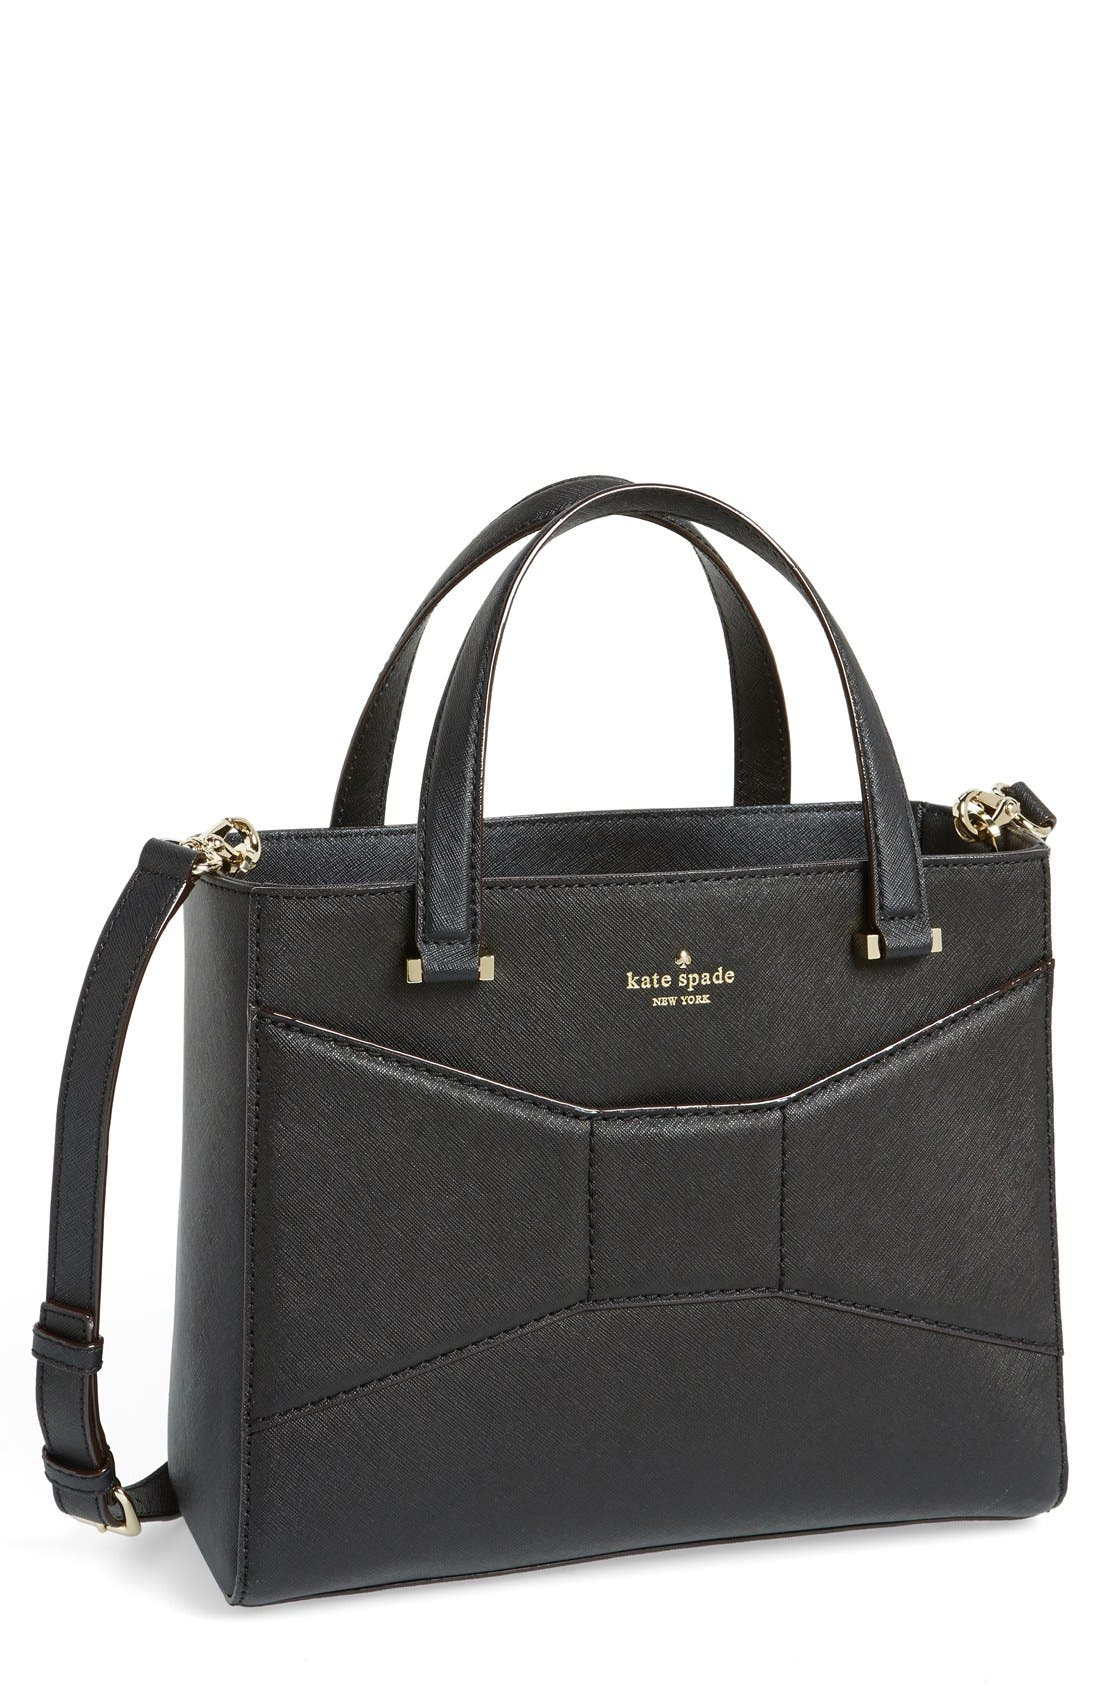 Alternate Image 1 Selected - kate spade new york '2 park avenue sweetheart' saffiano leather crossbody tote